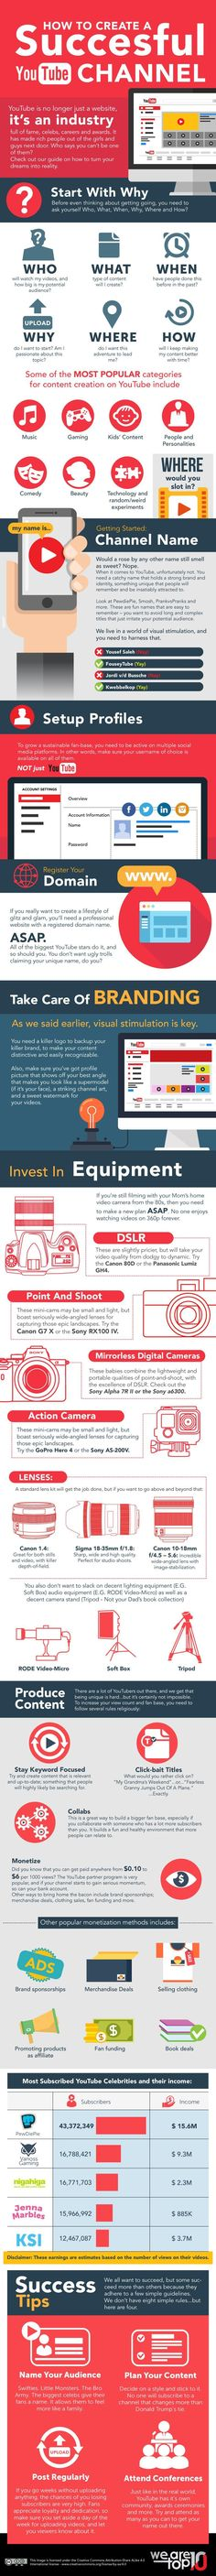 How to Create a Successful YouTube Channel [Infographic] - http://topseosoft.com/how-to-create-a-successful-youtube-channel-infographic/